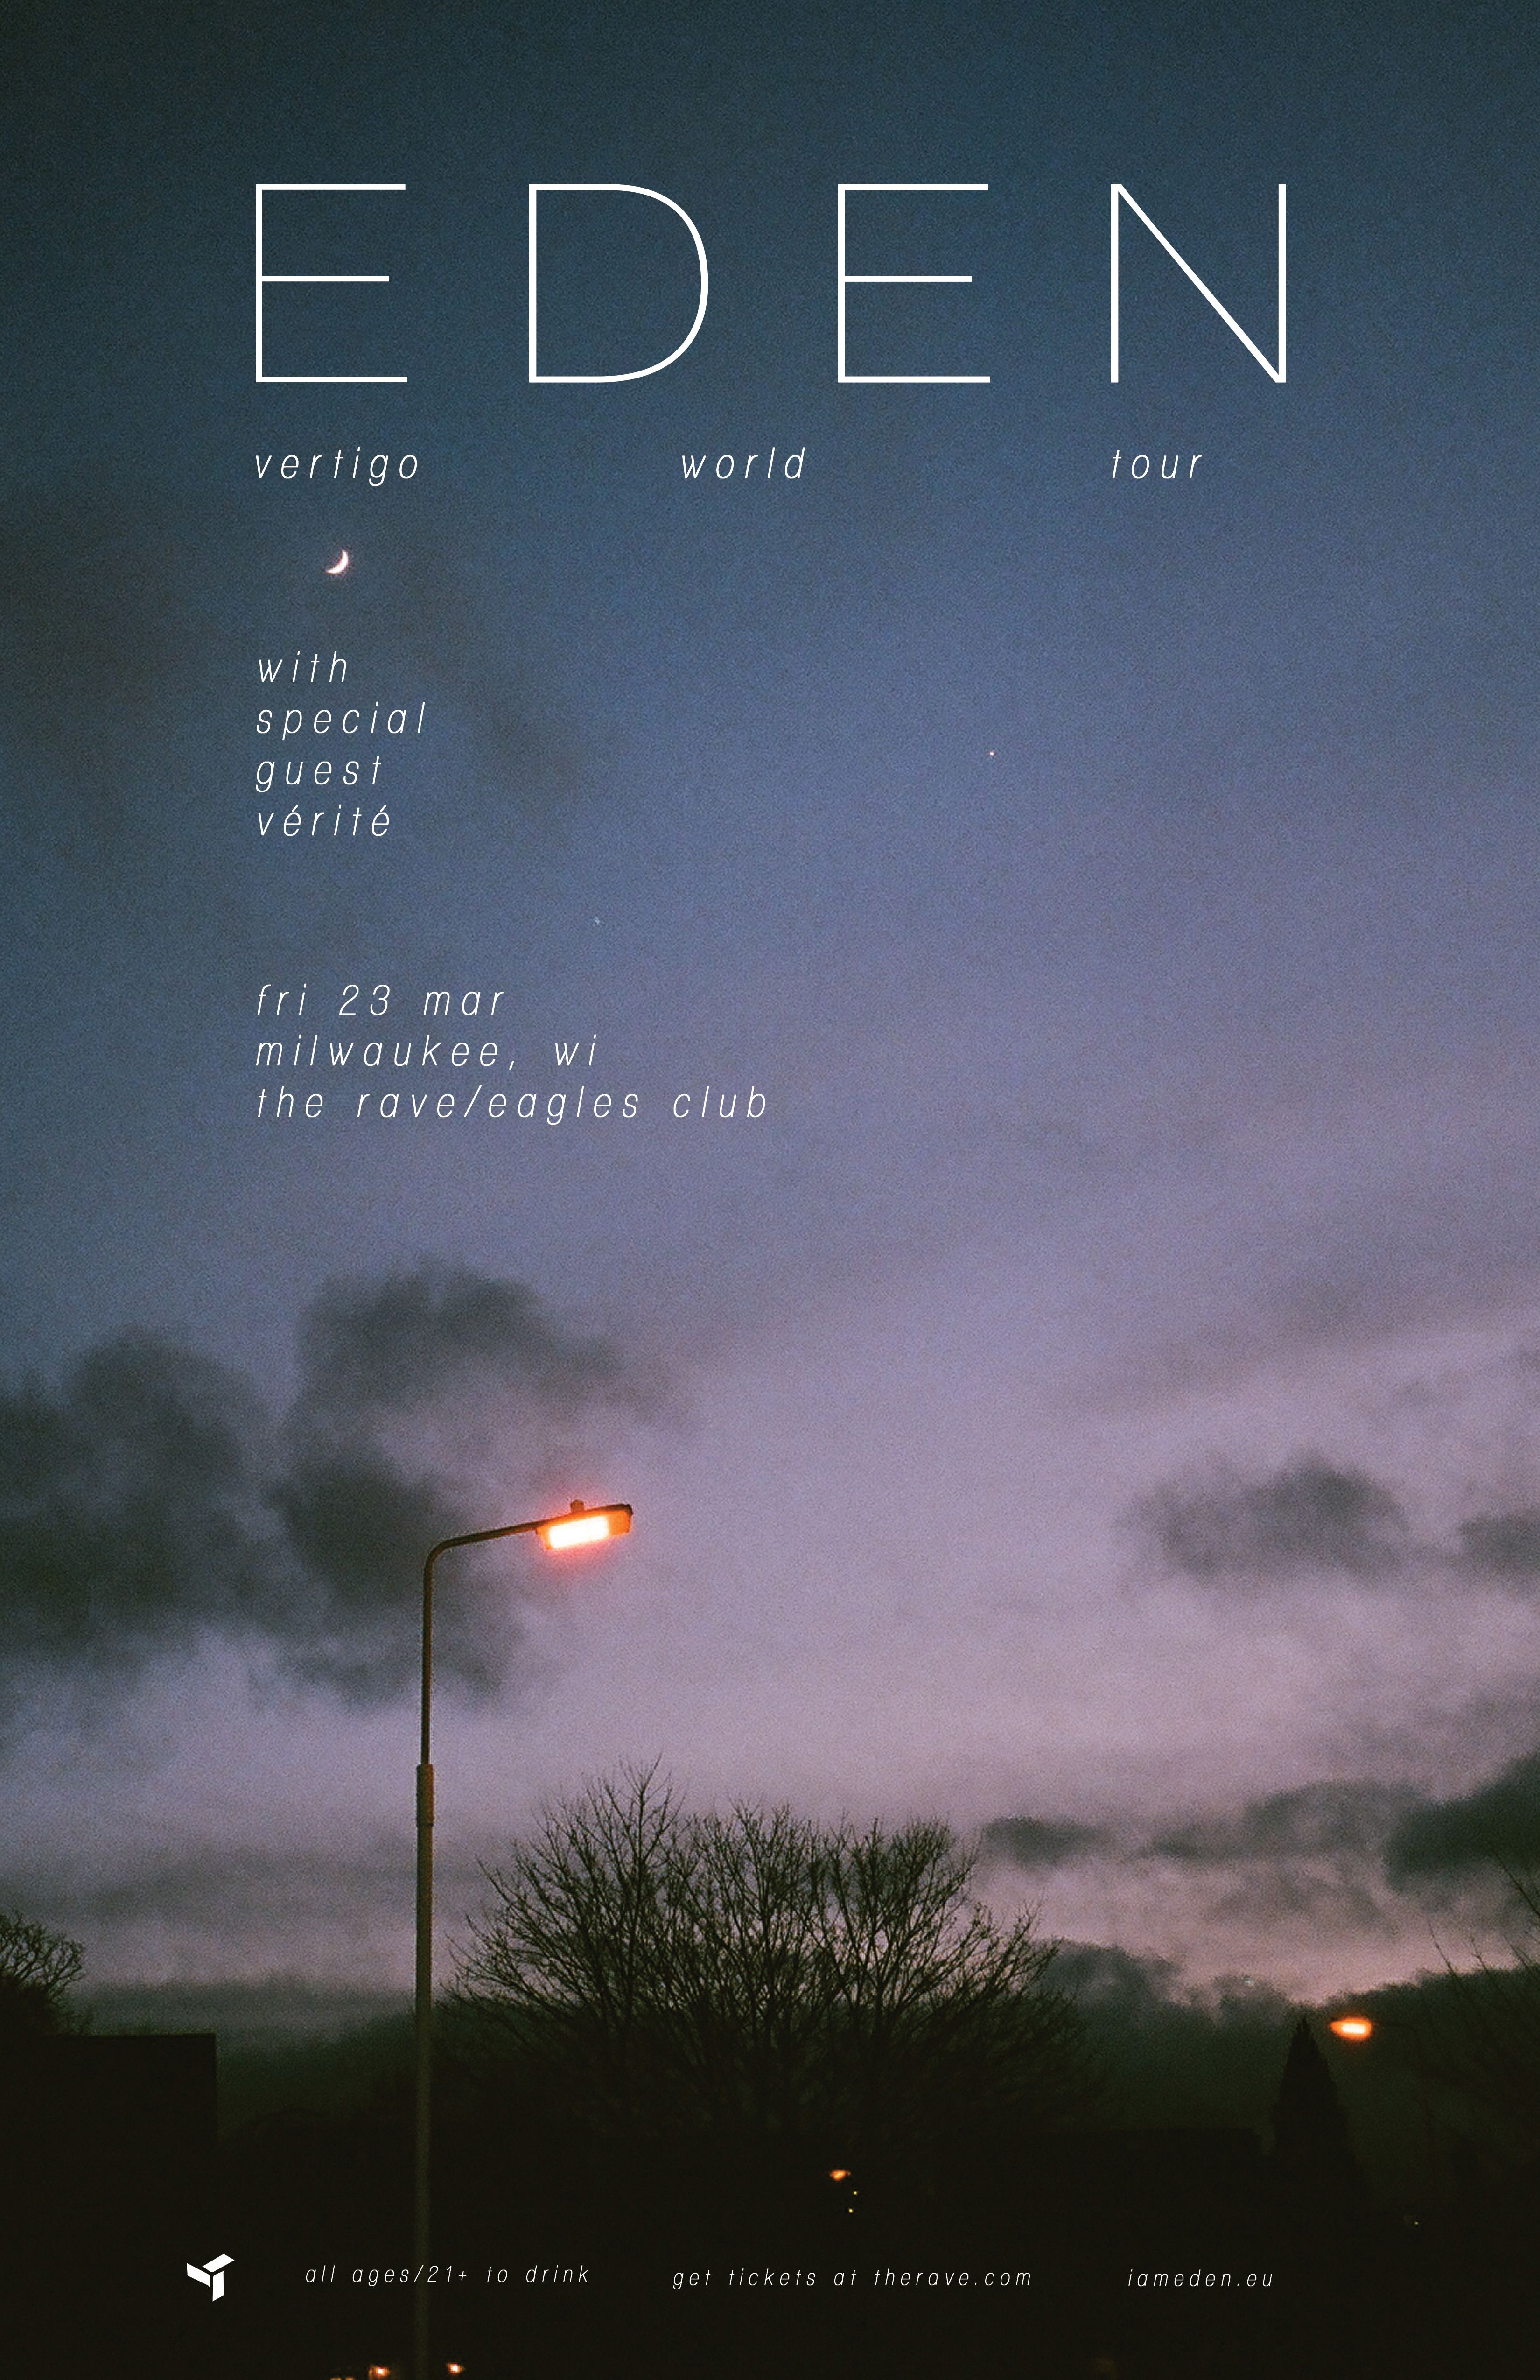 Vertigo World Tour Eden With Verite Friday March 23 2018 At 8pm The Rave Eagles Club Milwaukee Wi All Ages To Enter 21 Eden Lyrics Eden Musician Eden